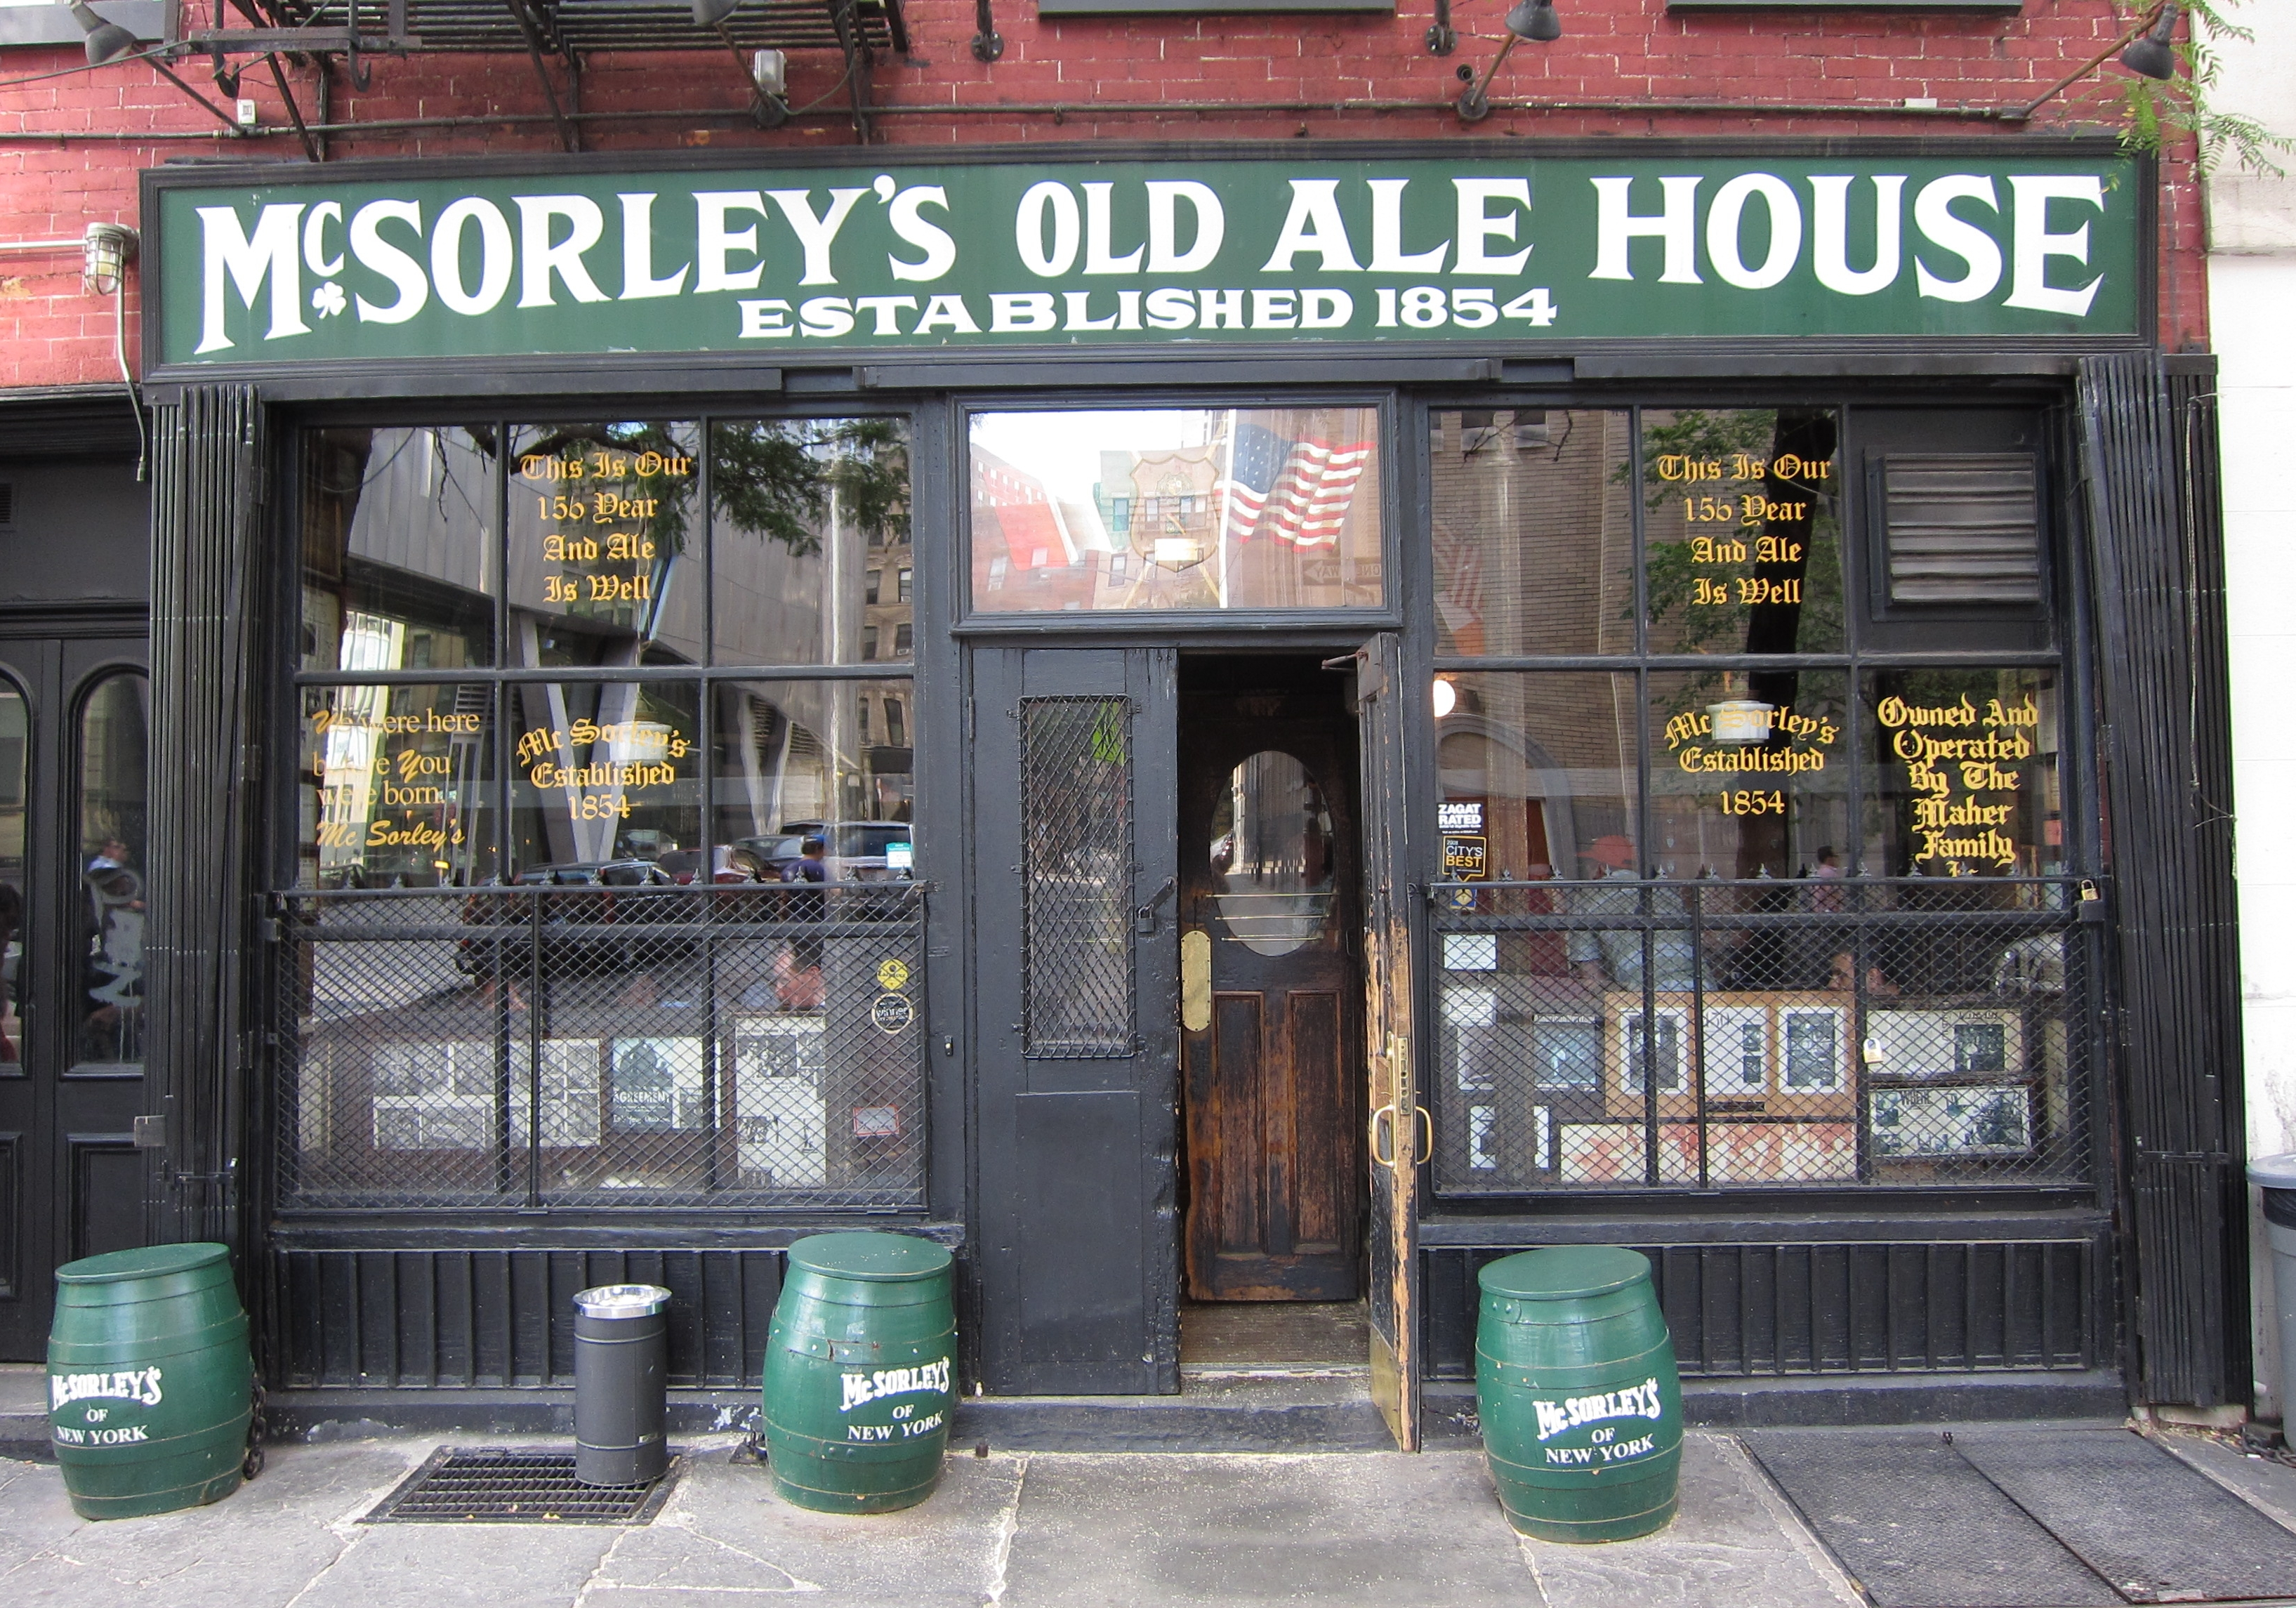 https://upload.wikimedia.org/wikipedia/commons/f/f1/McSorley's_Old_Ale_House_001_crop.jpg